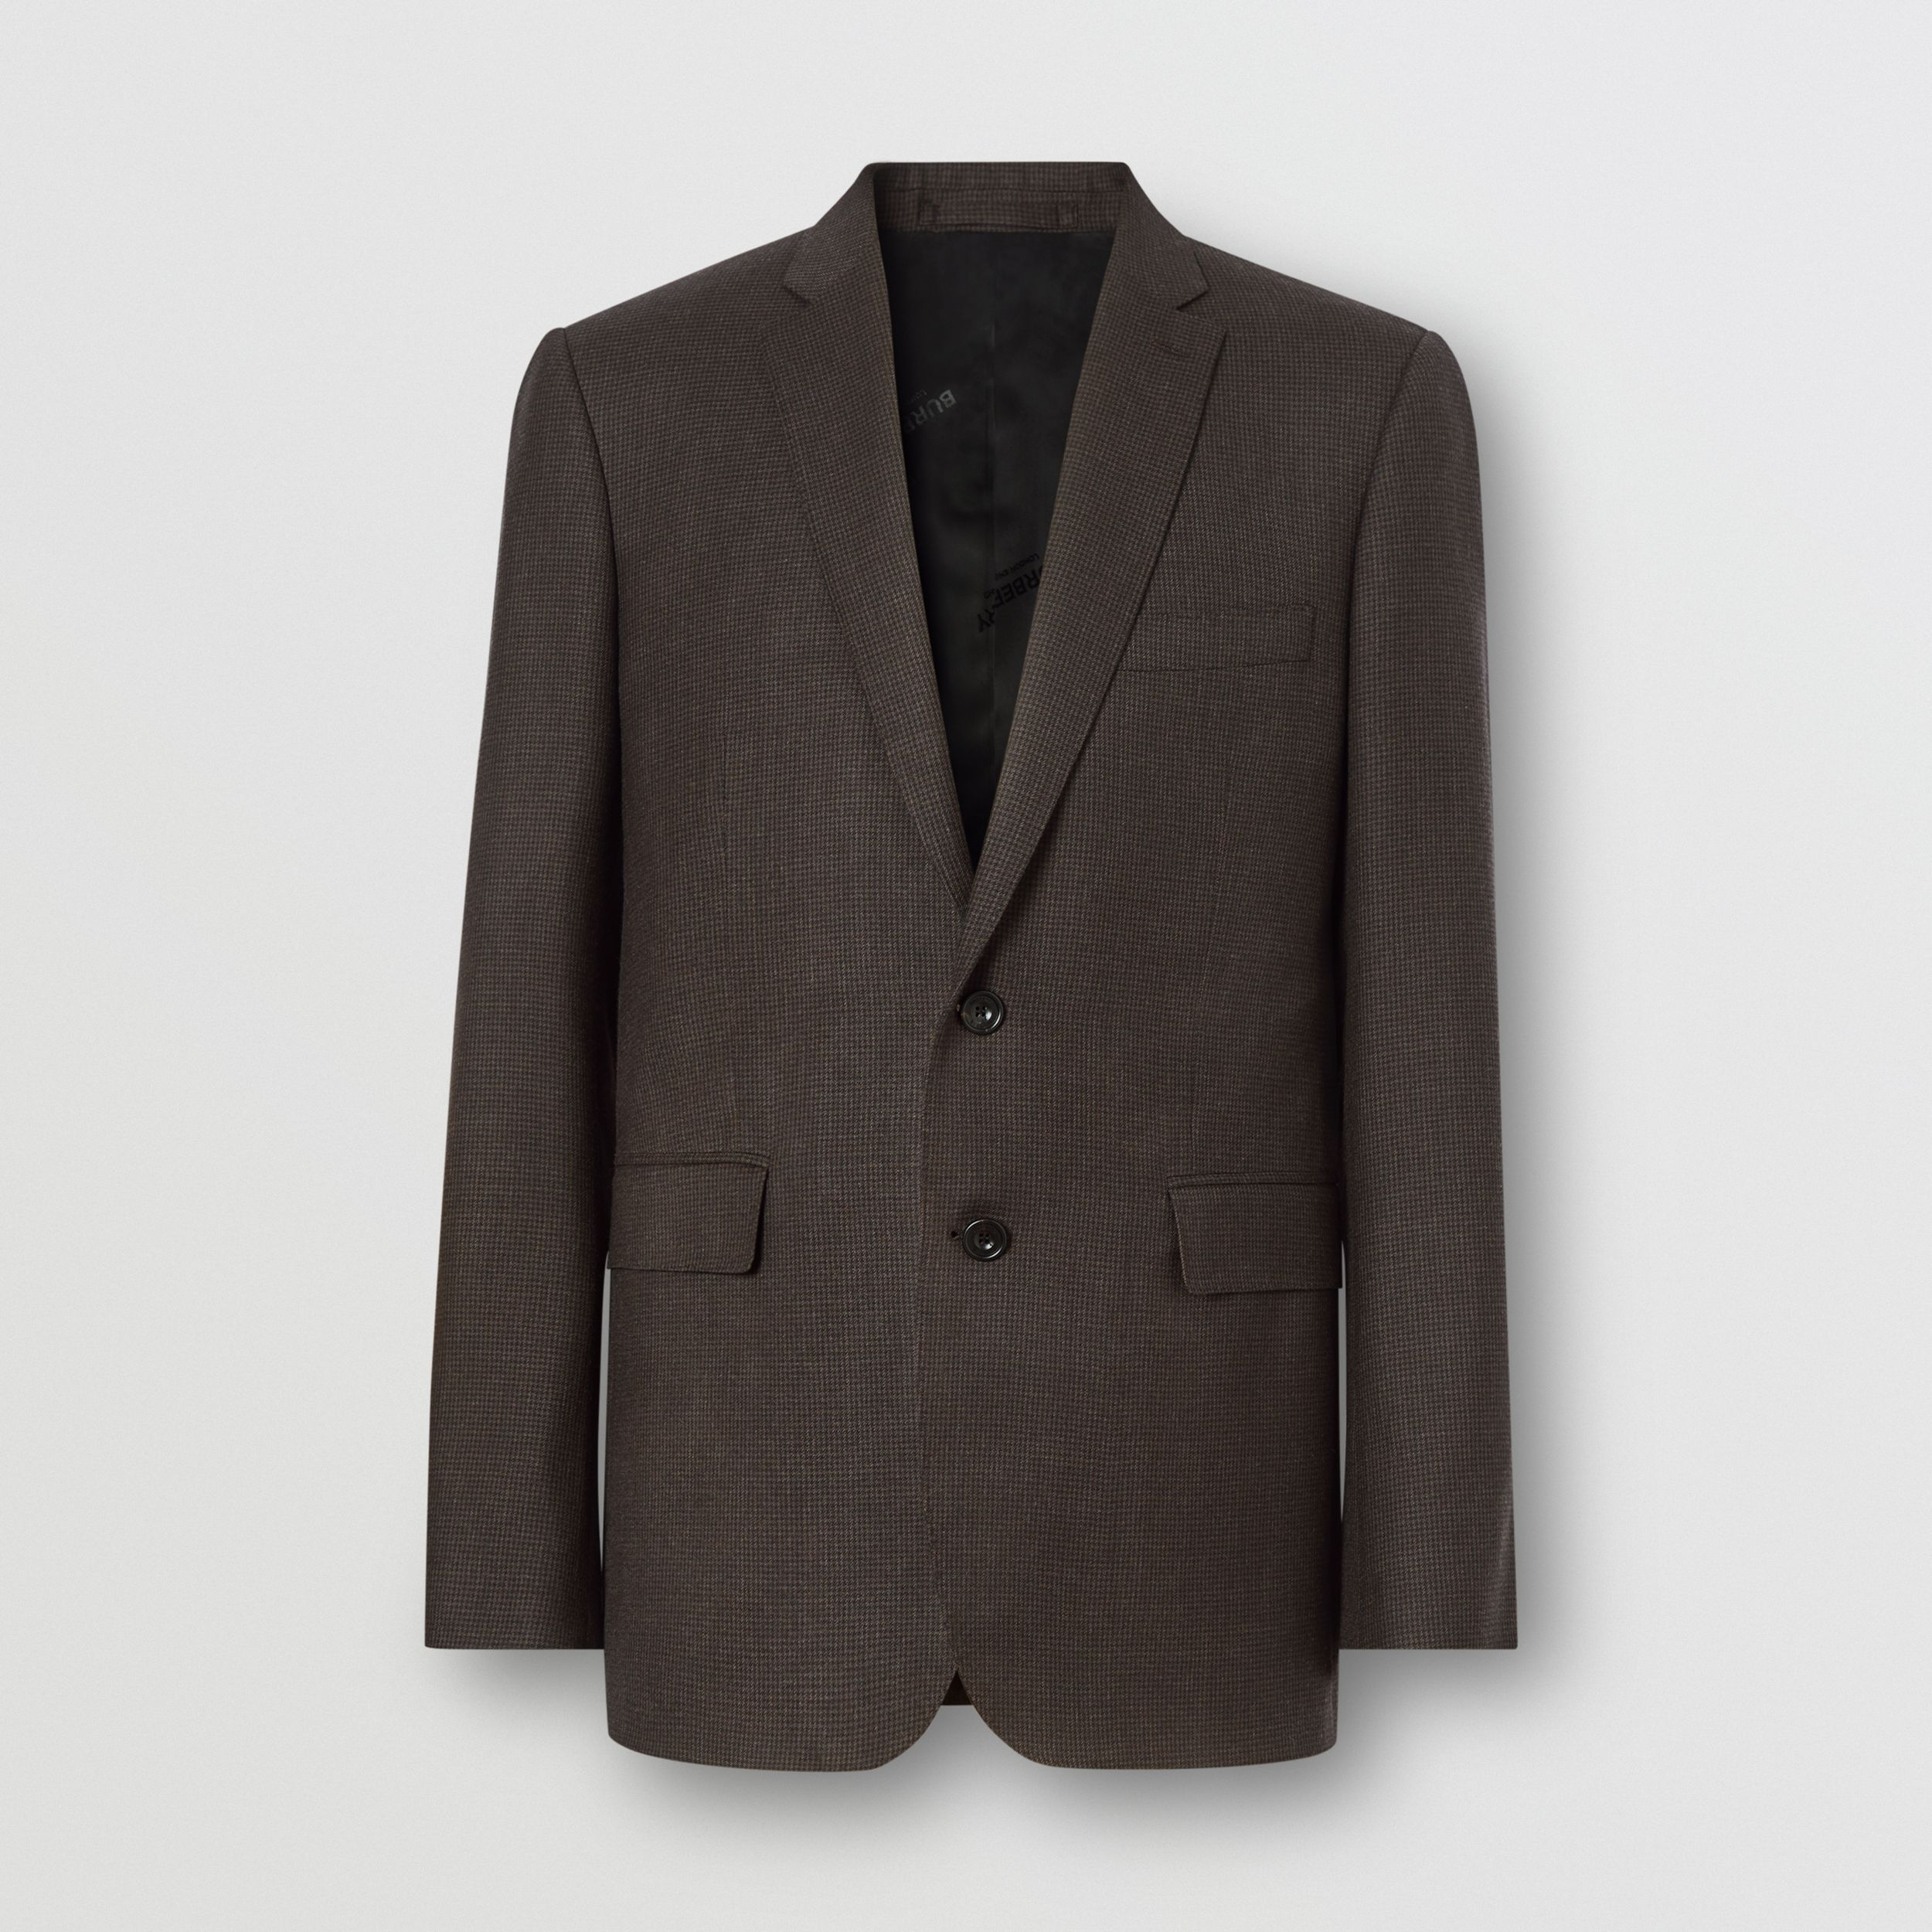 Slim Fit Puppytooth Check Wool Suit in Dark Brown - Men | Burberry Australia - 4